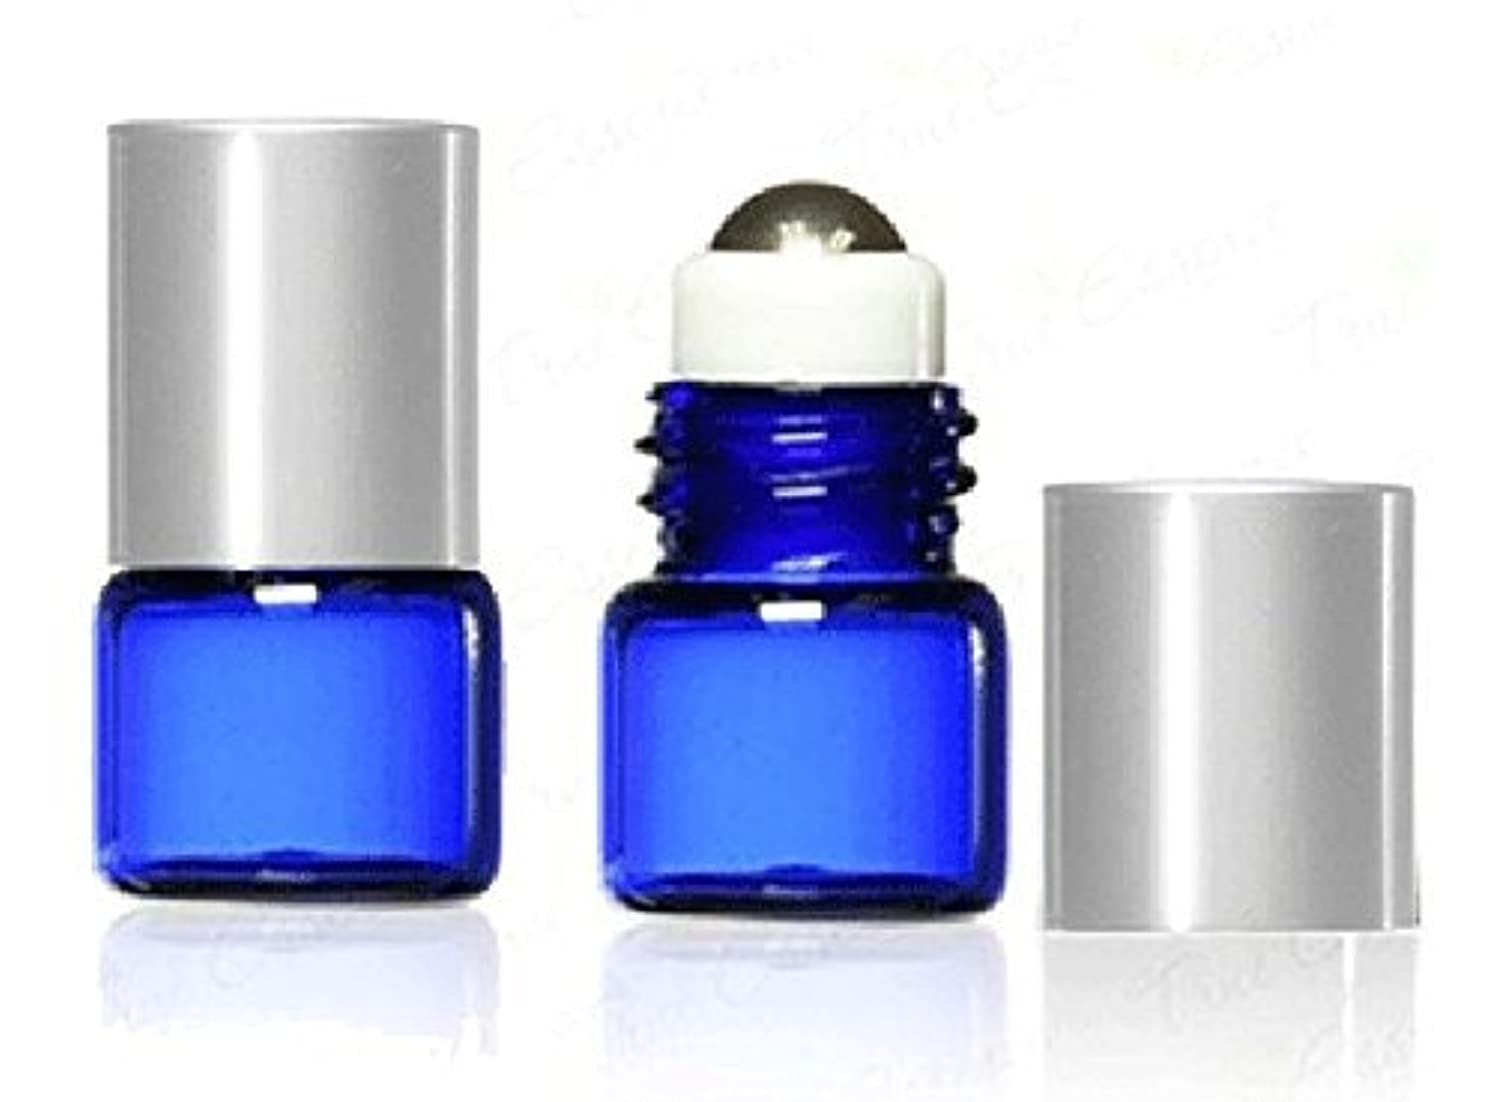 ぶら下がる権利を与える脱獄Grand Parfums 1 ml, 1/4 Dram Cobalt Blue Glass Micro Mini 1ml Roll-on Glass Bottles with Metal Roller Balls &...